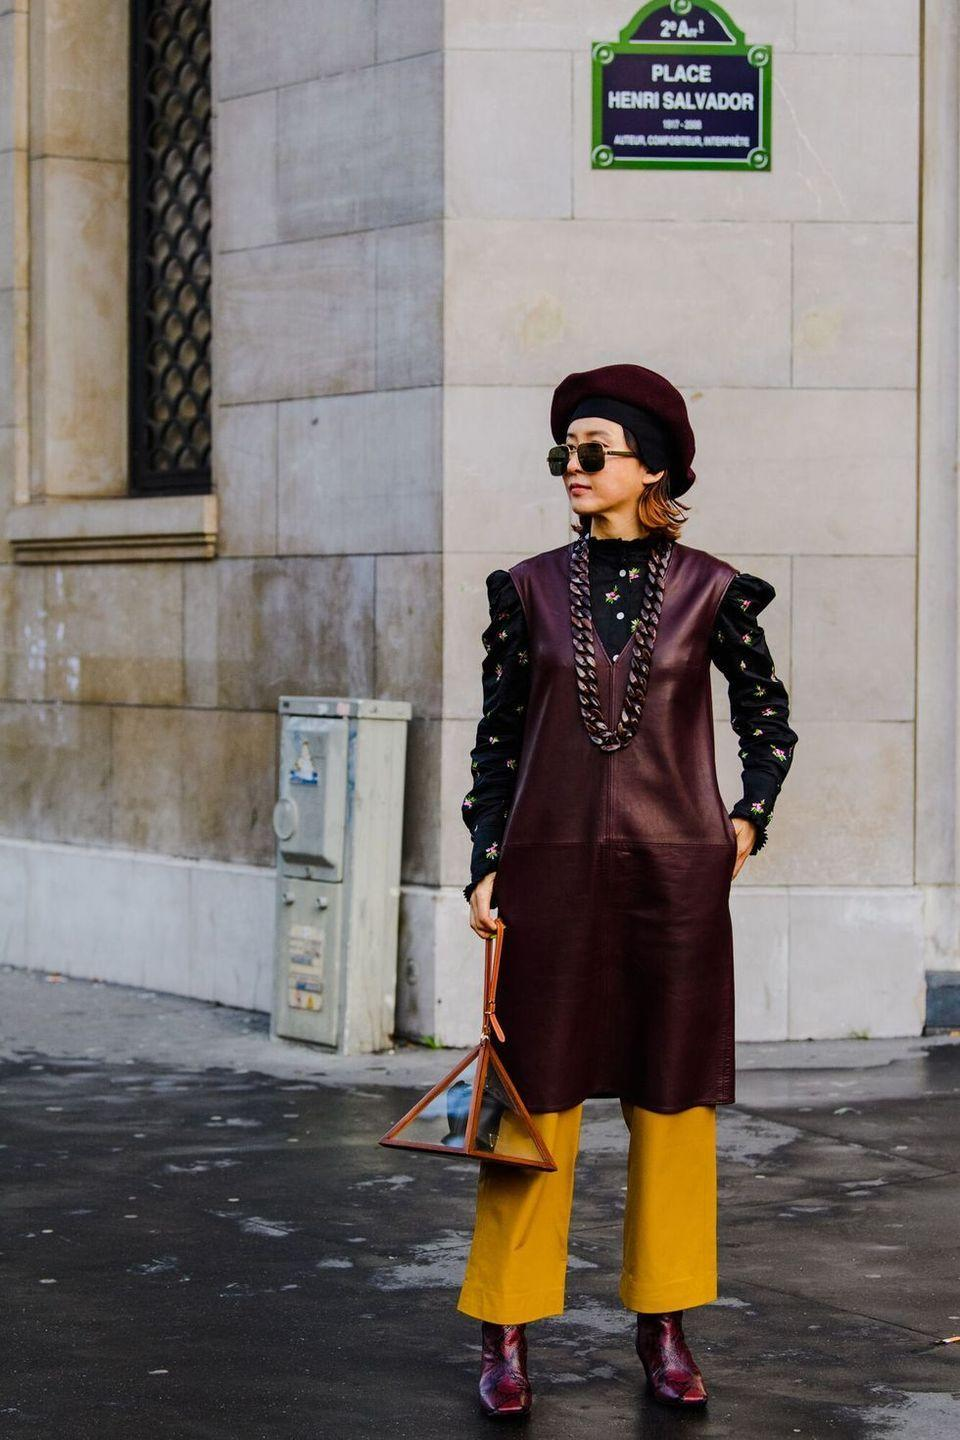 <p>This woman is giving us serious '70s time travel vibes and we're here for it.</p>